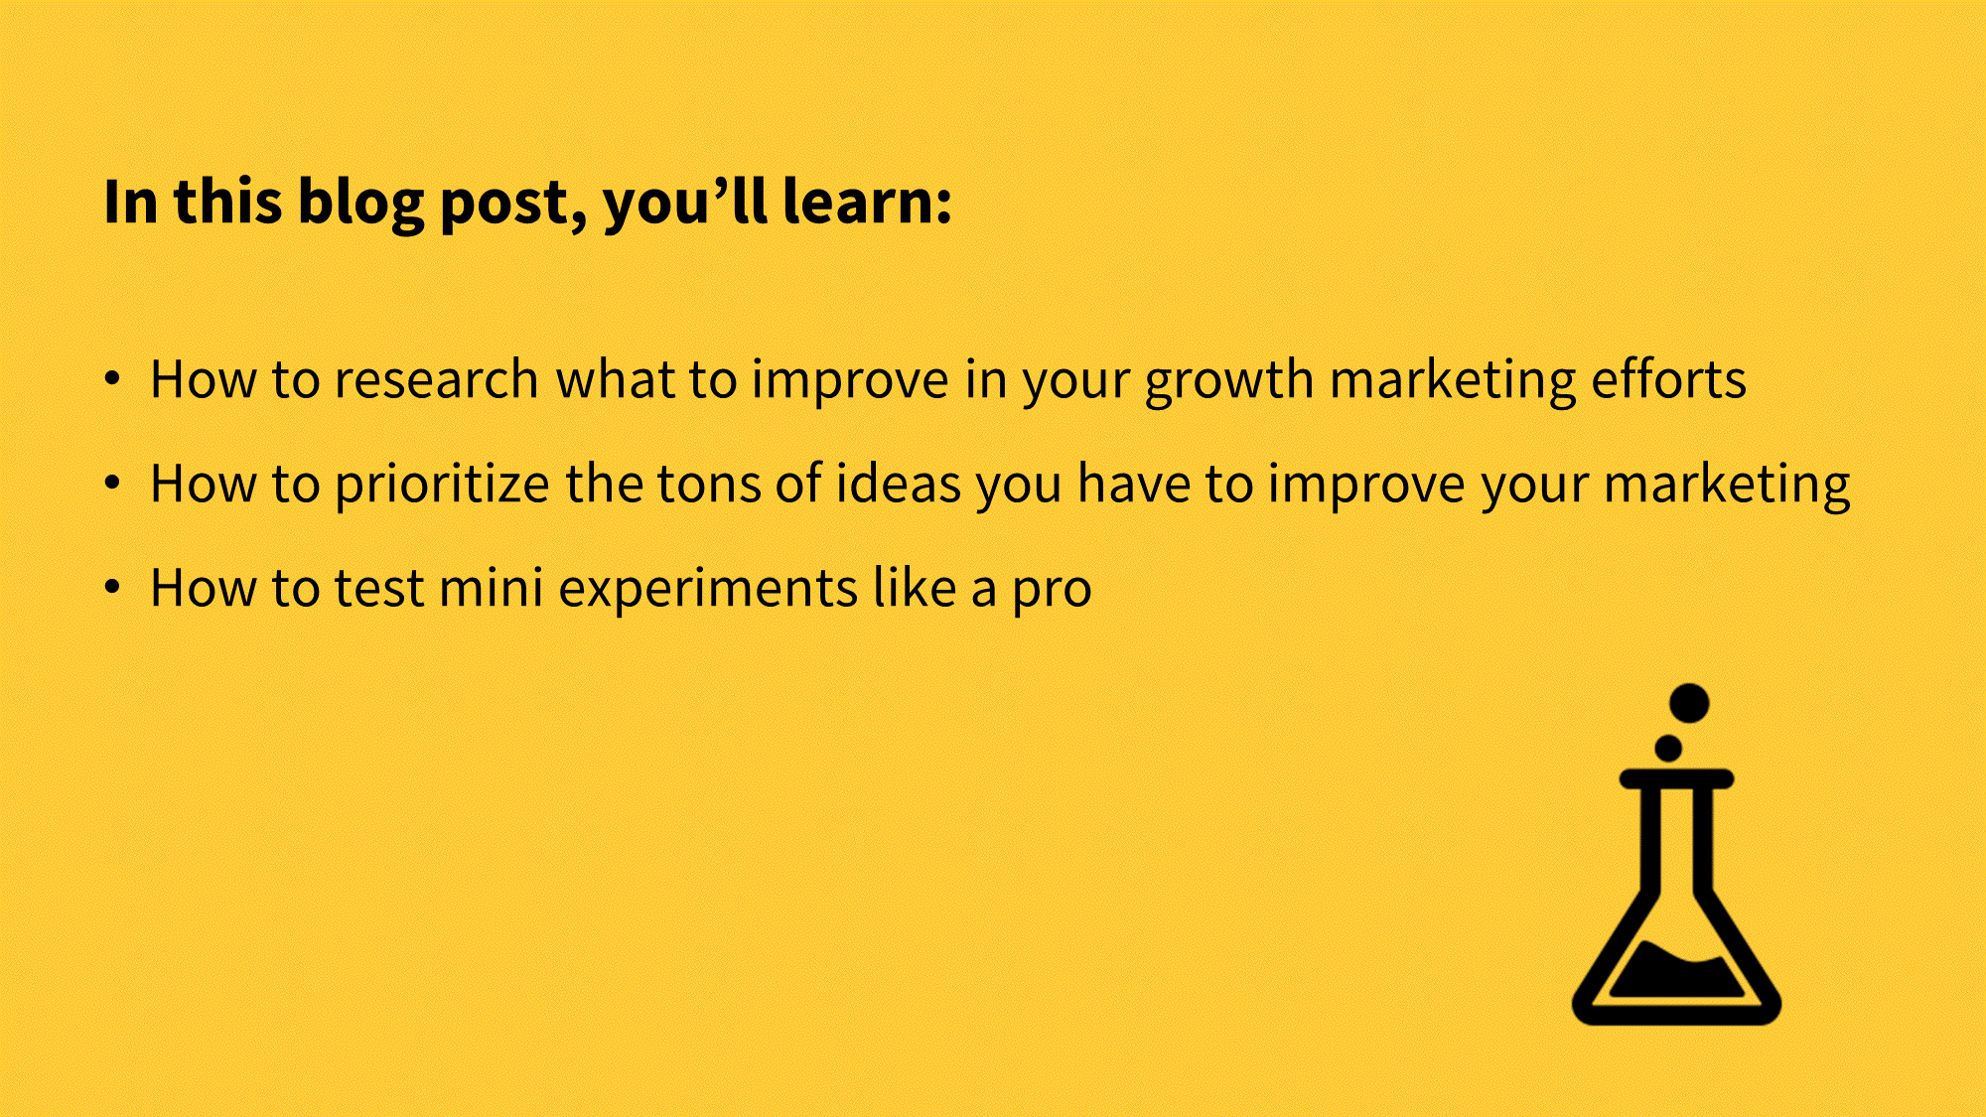 How to research, prioritize, and test improvements for your growth marketing [review], In this blog post, you'll learn:  How to research what to improve in your growth marketing efforts How to prioritize the tons of ideas you have to improve your marketing How to test mini experiments like a pro